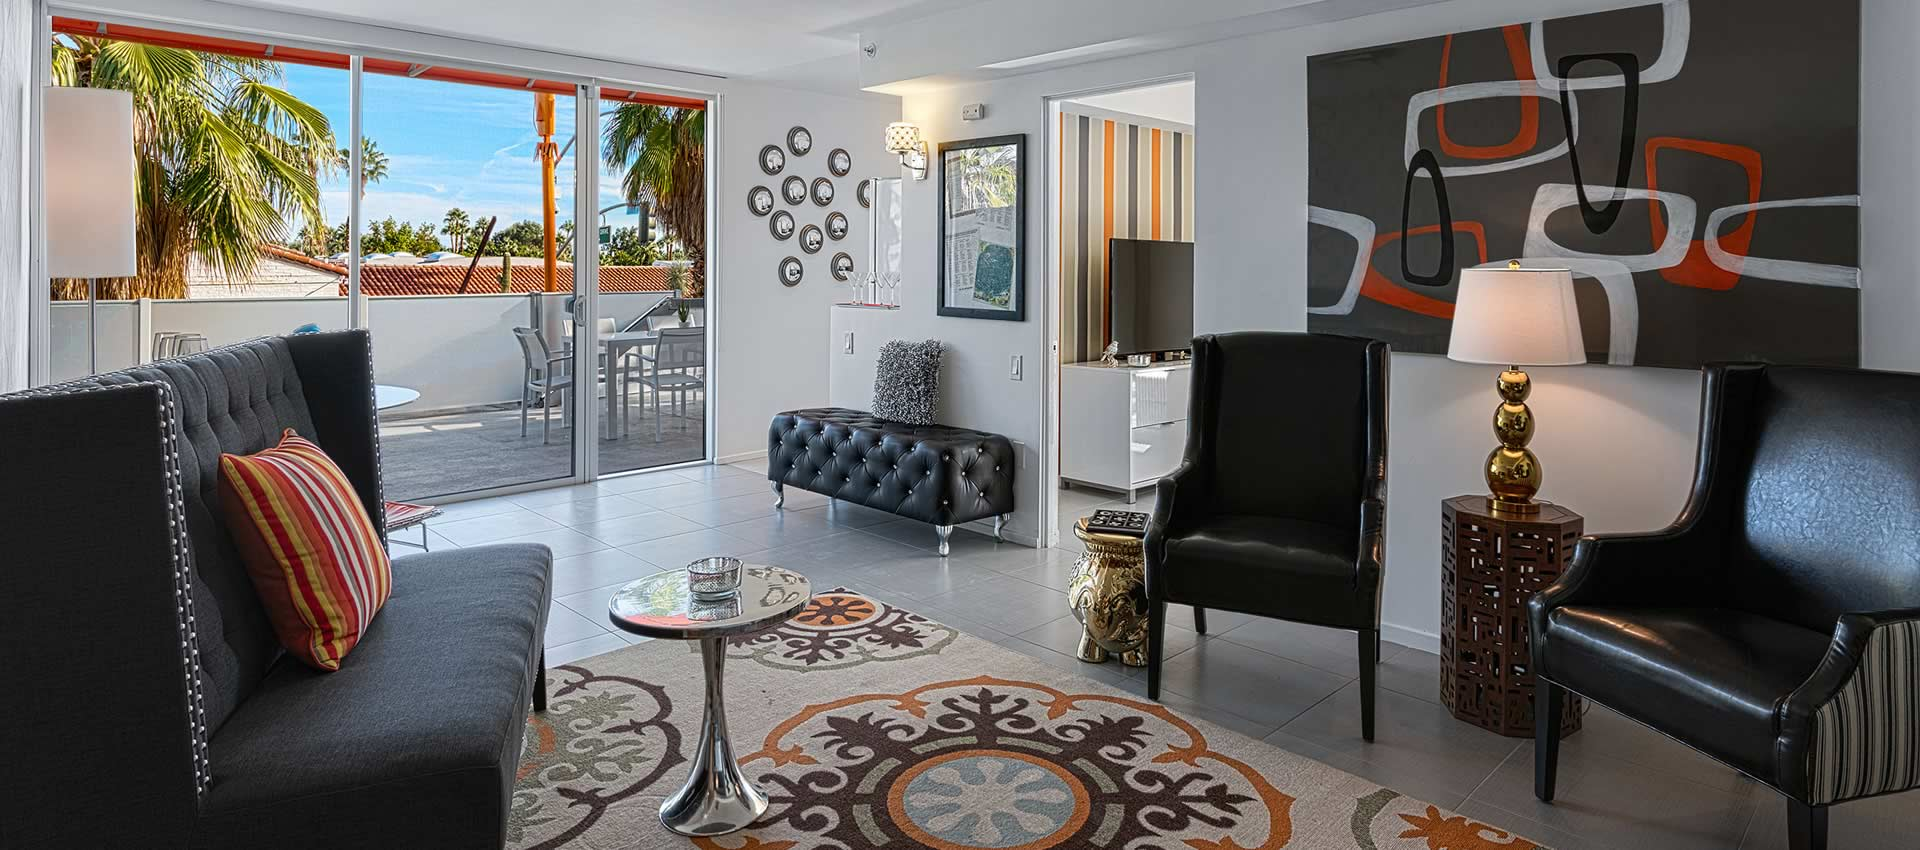 twist hotel room 219 living room with tables and chairs with a view out the big windows of the patio